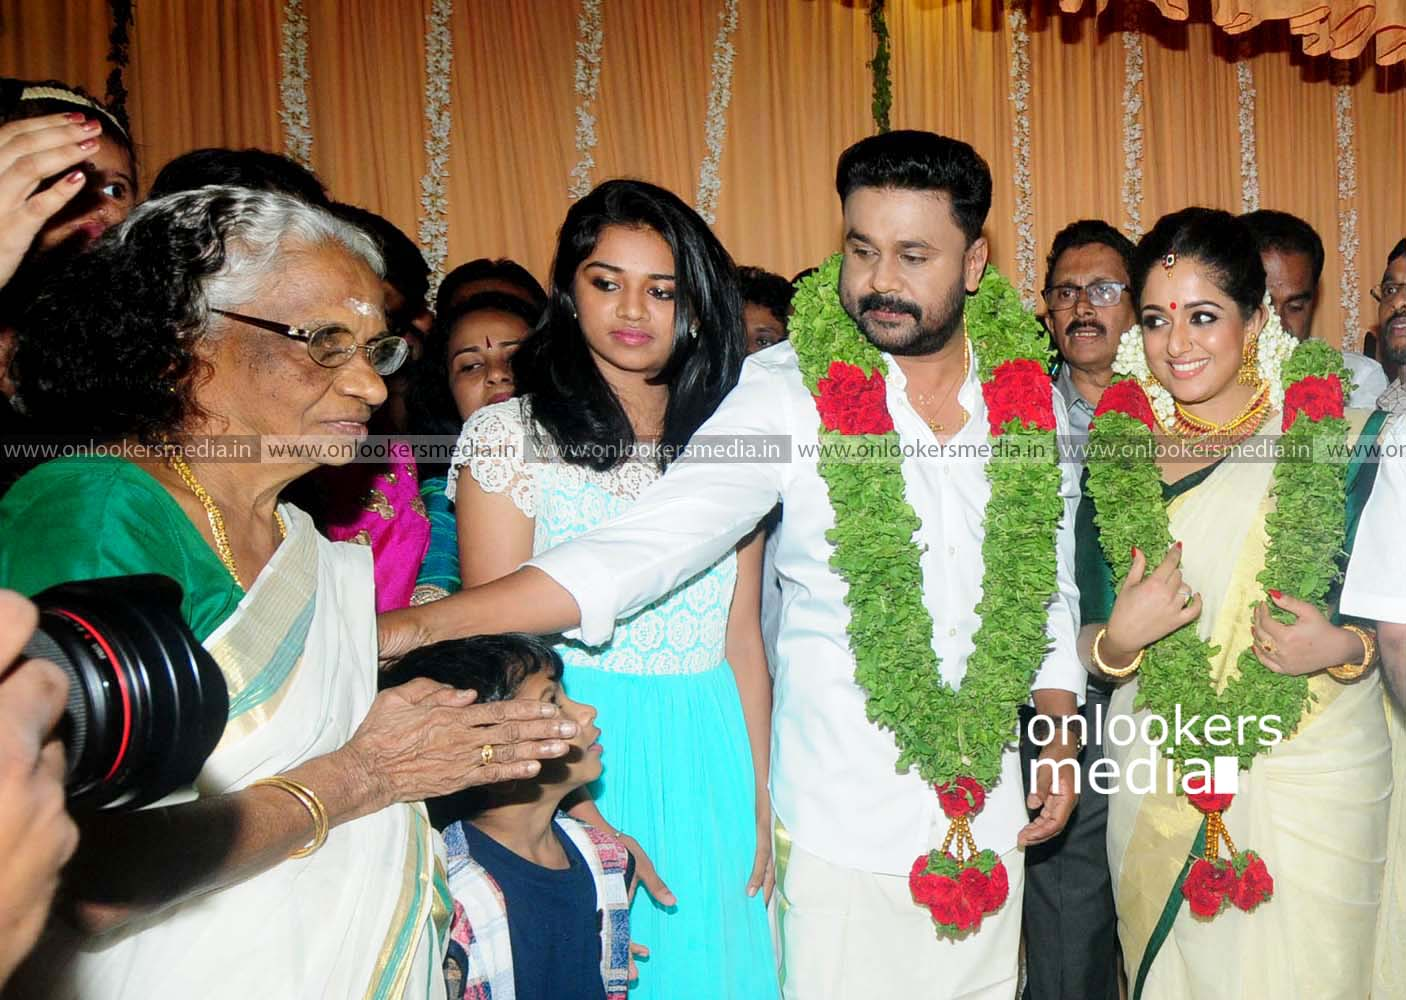 http://onlookersmedia.in/wp-content/uploads/2016/11/Dileep-Kavya-Madhavan-Wedding-Stills-Photos-27.jpg